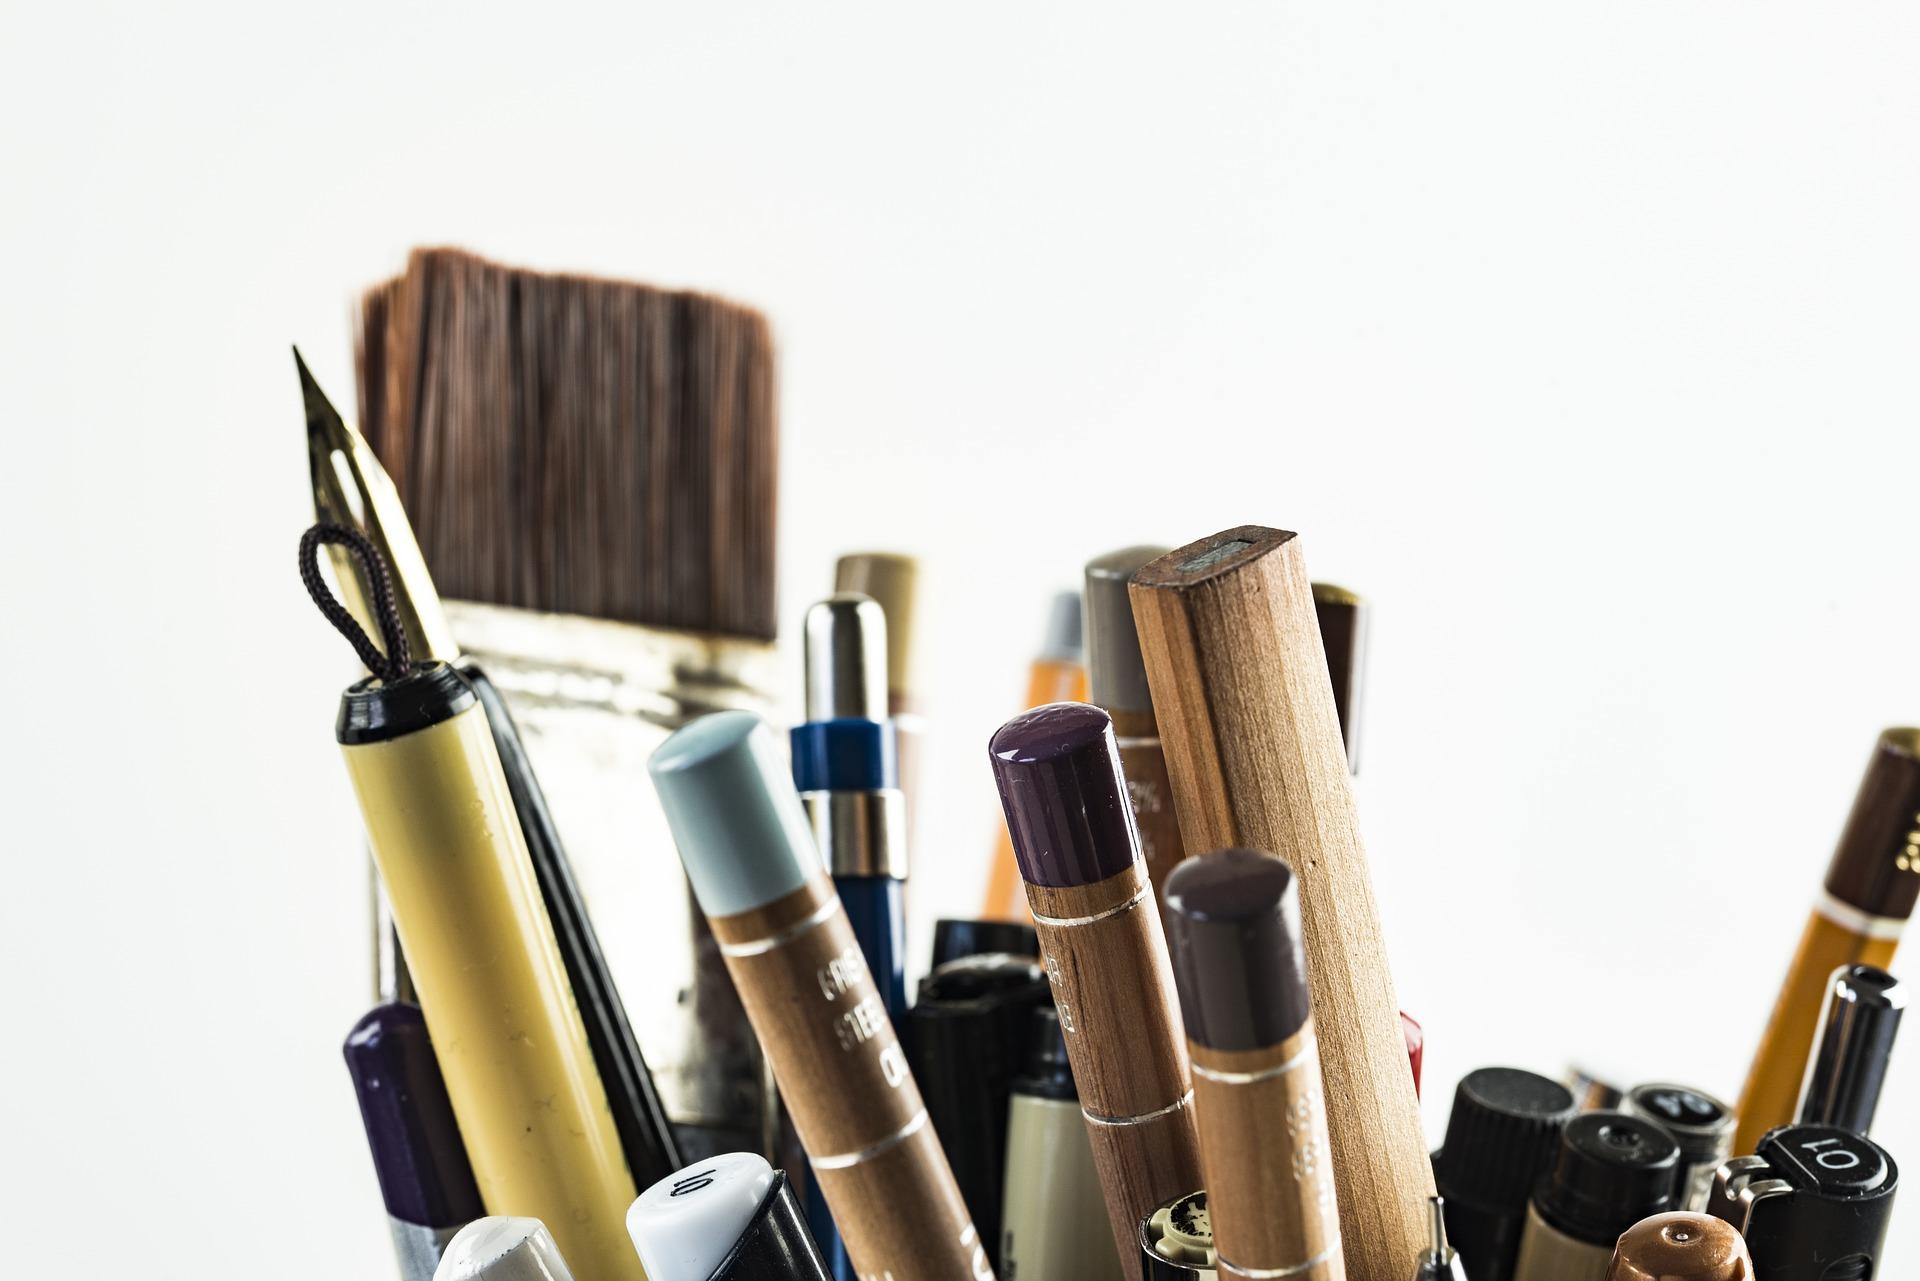 writing and painting utensils